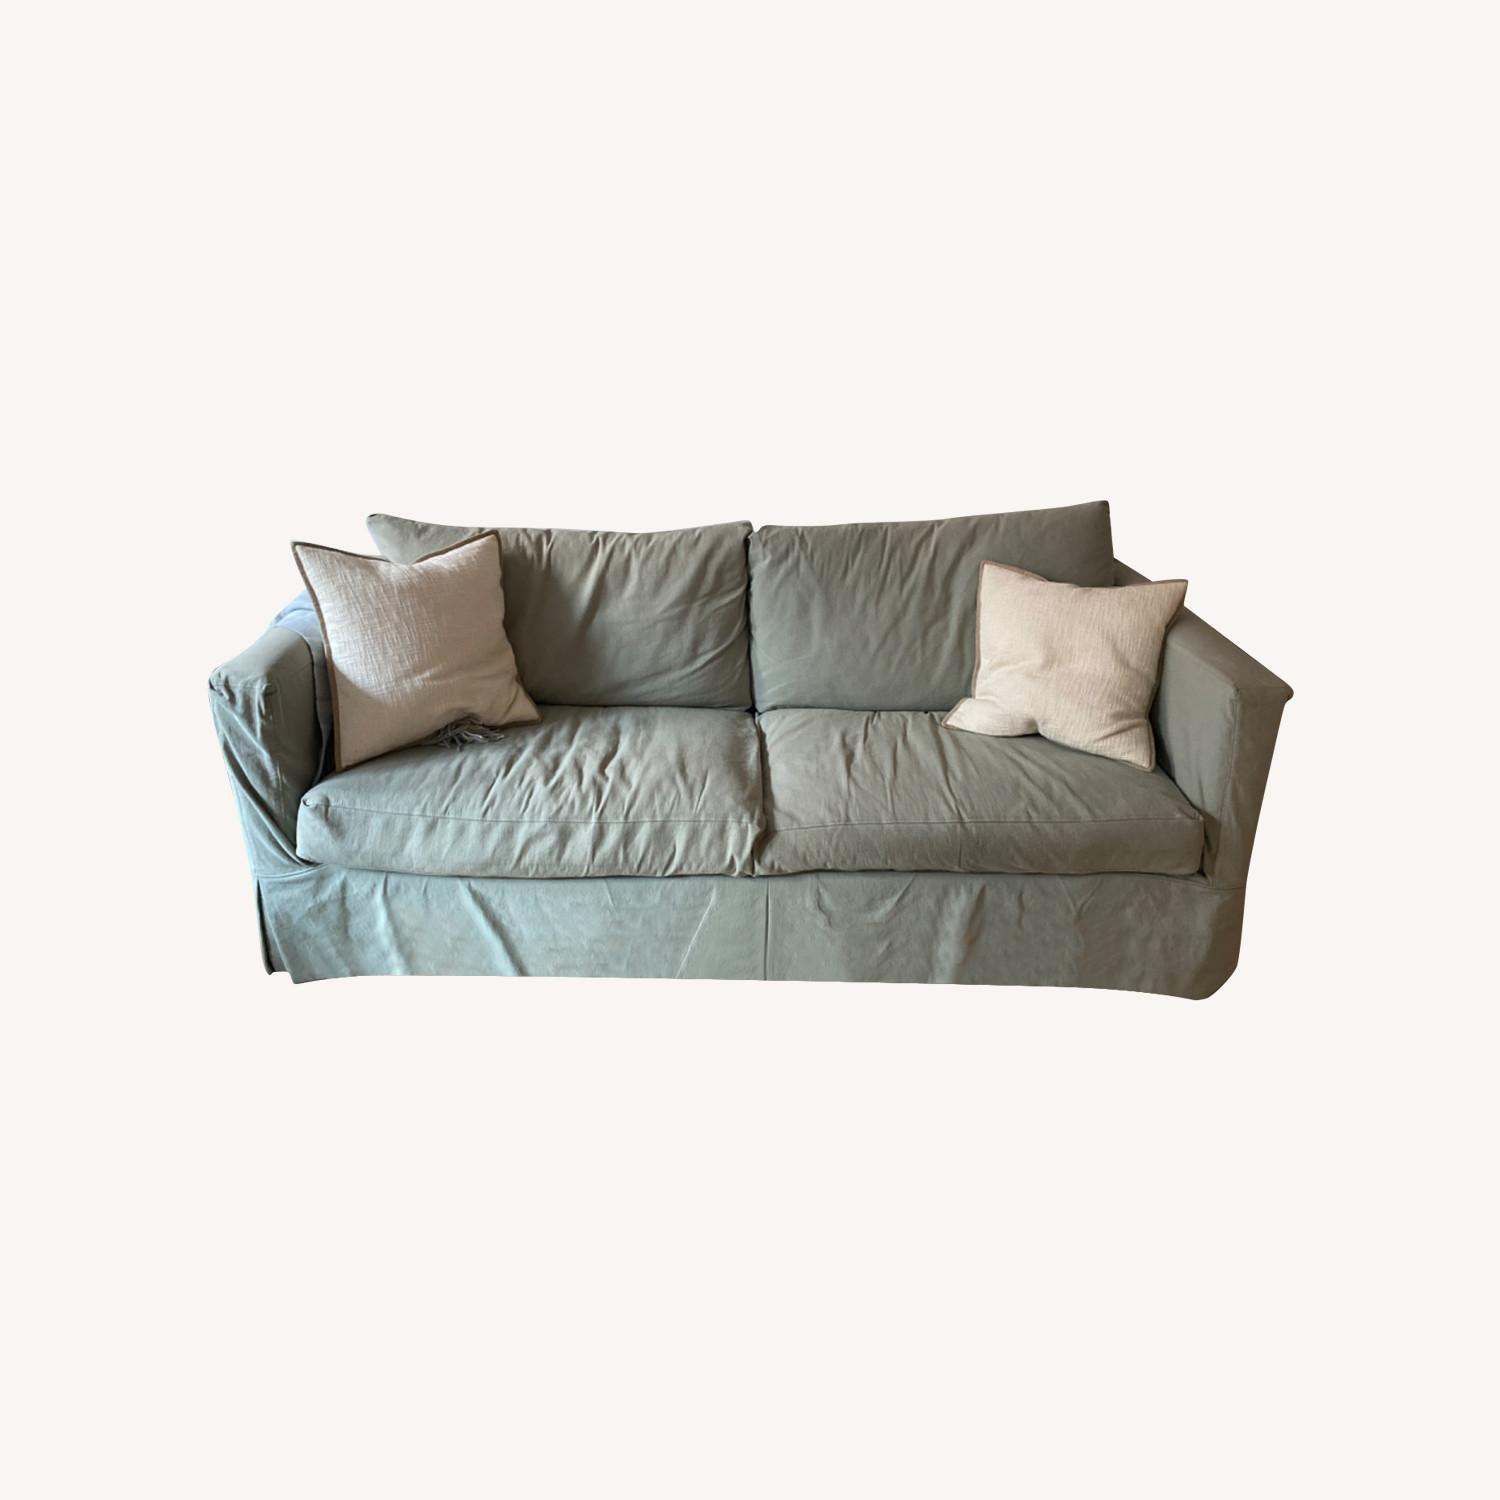 Crate and Barrel Sea Foam Green Couch - image-0